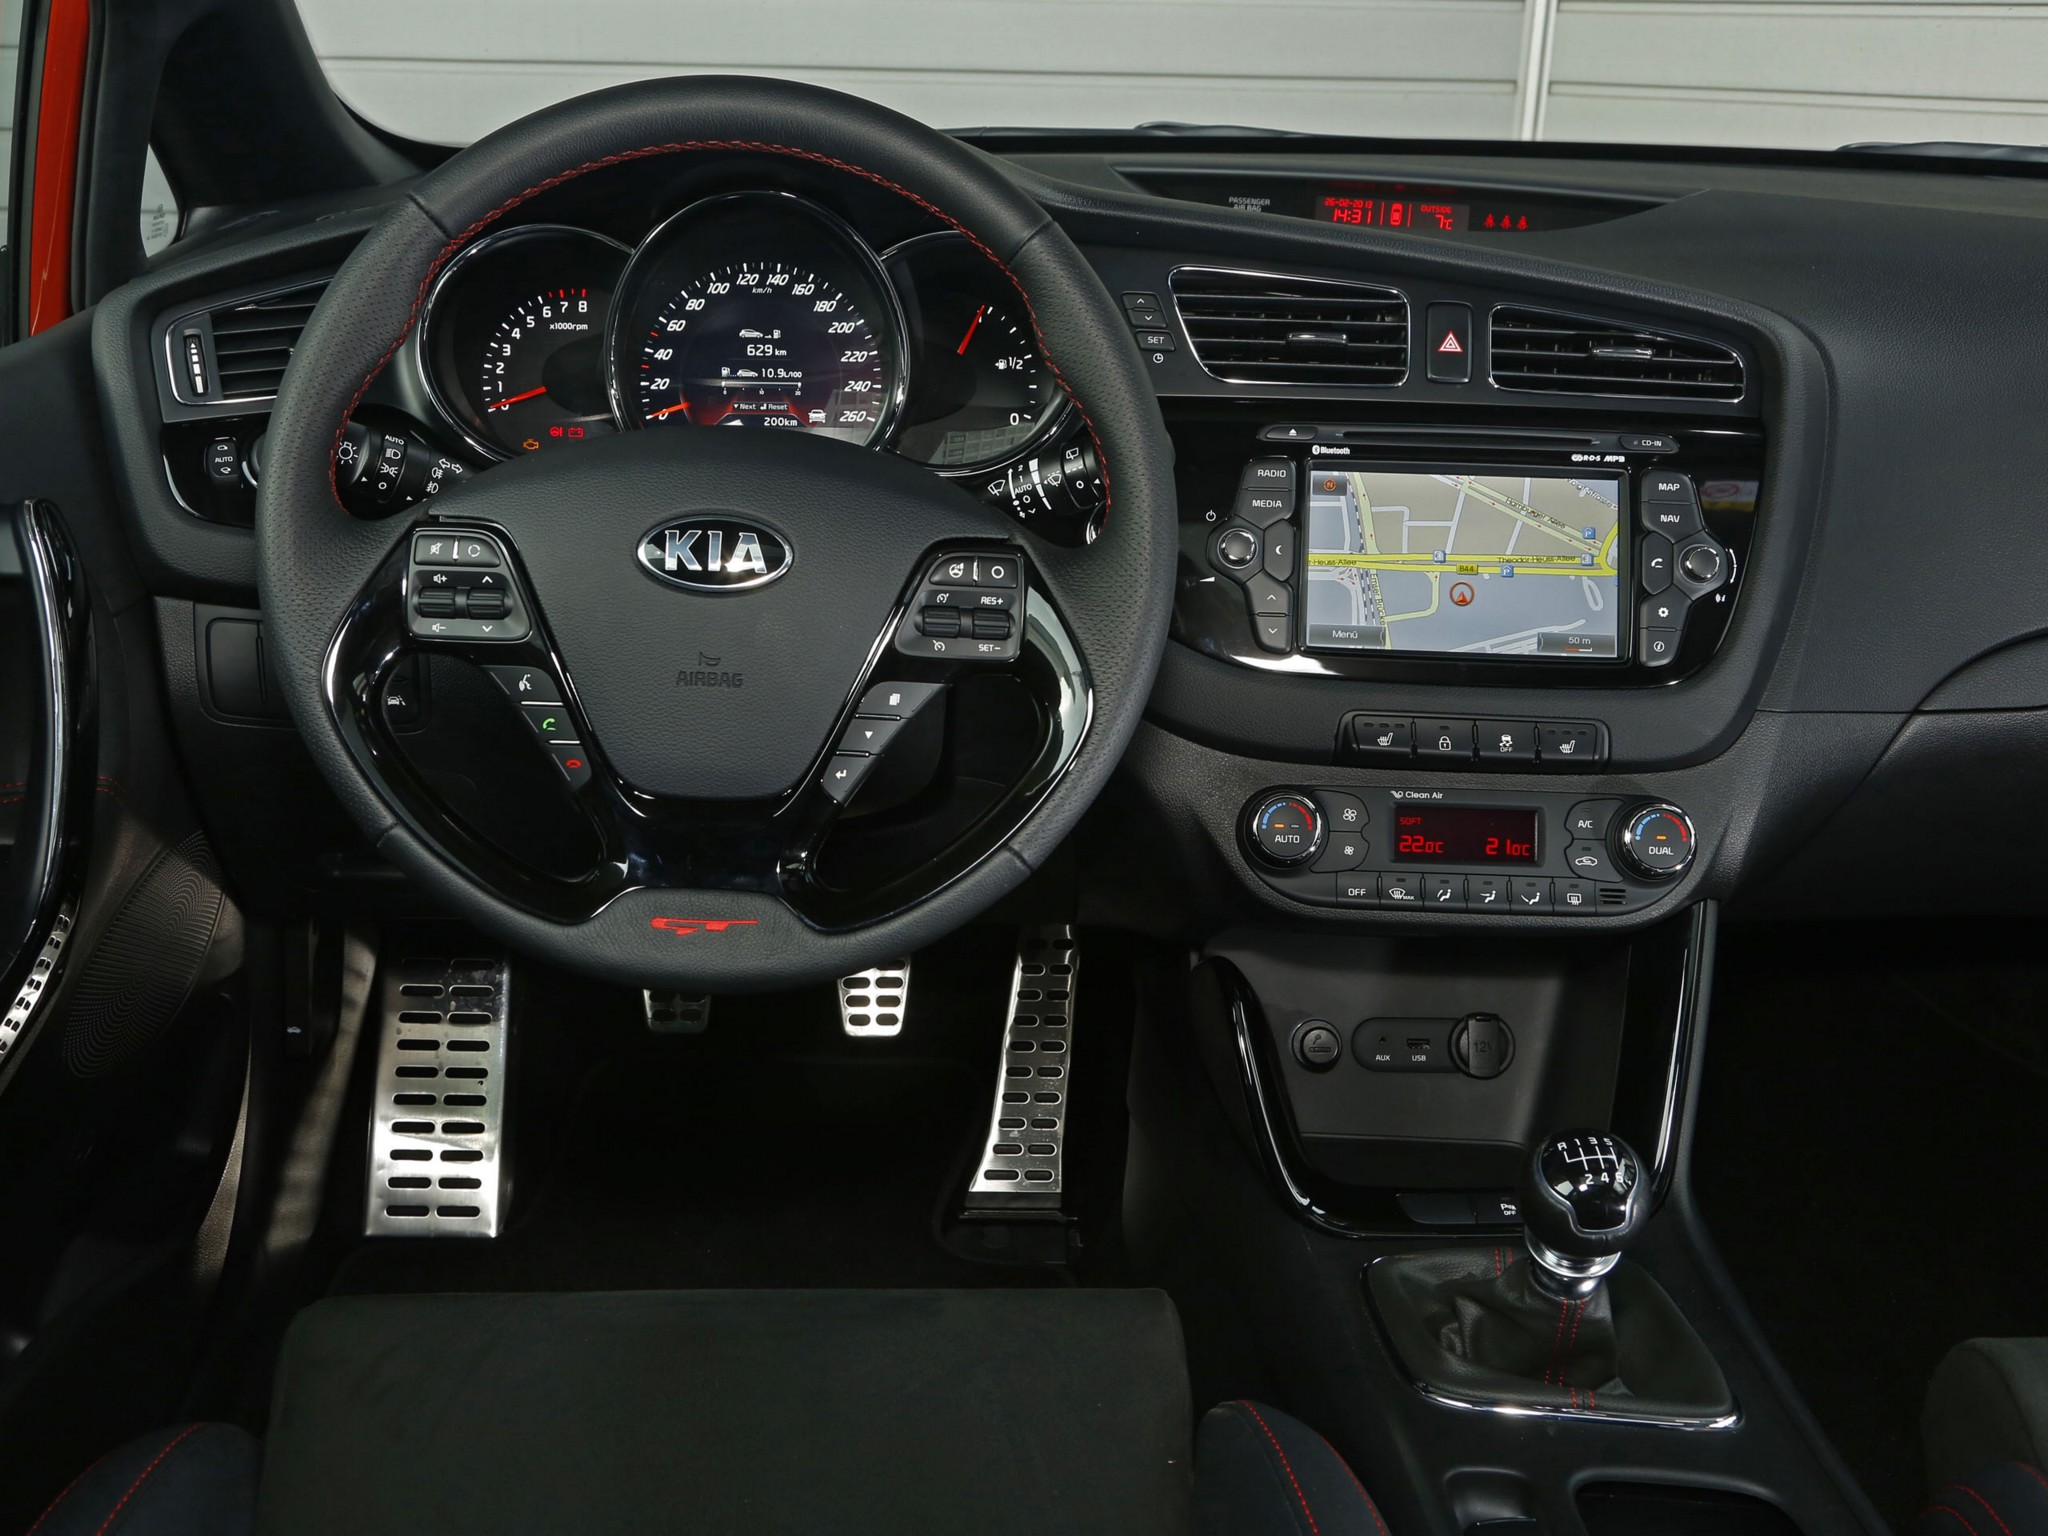 kia pro cee d gt specs 2013 2014 2015 2016 2017 2018 autoevolution. Black Bedroom Furniture Sets. Home Design Ideas